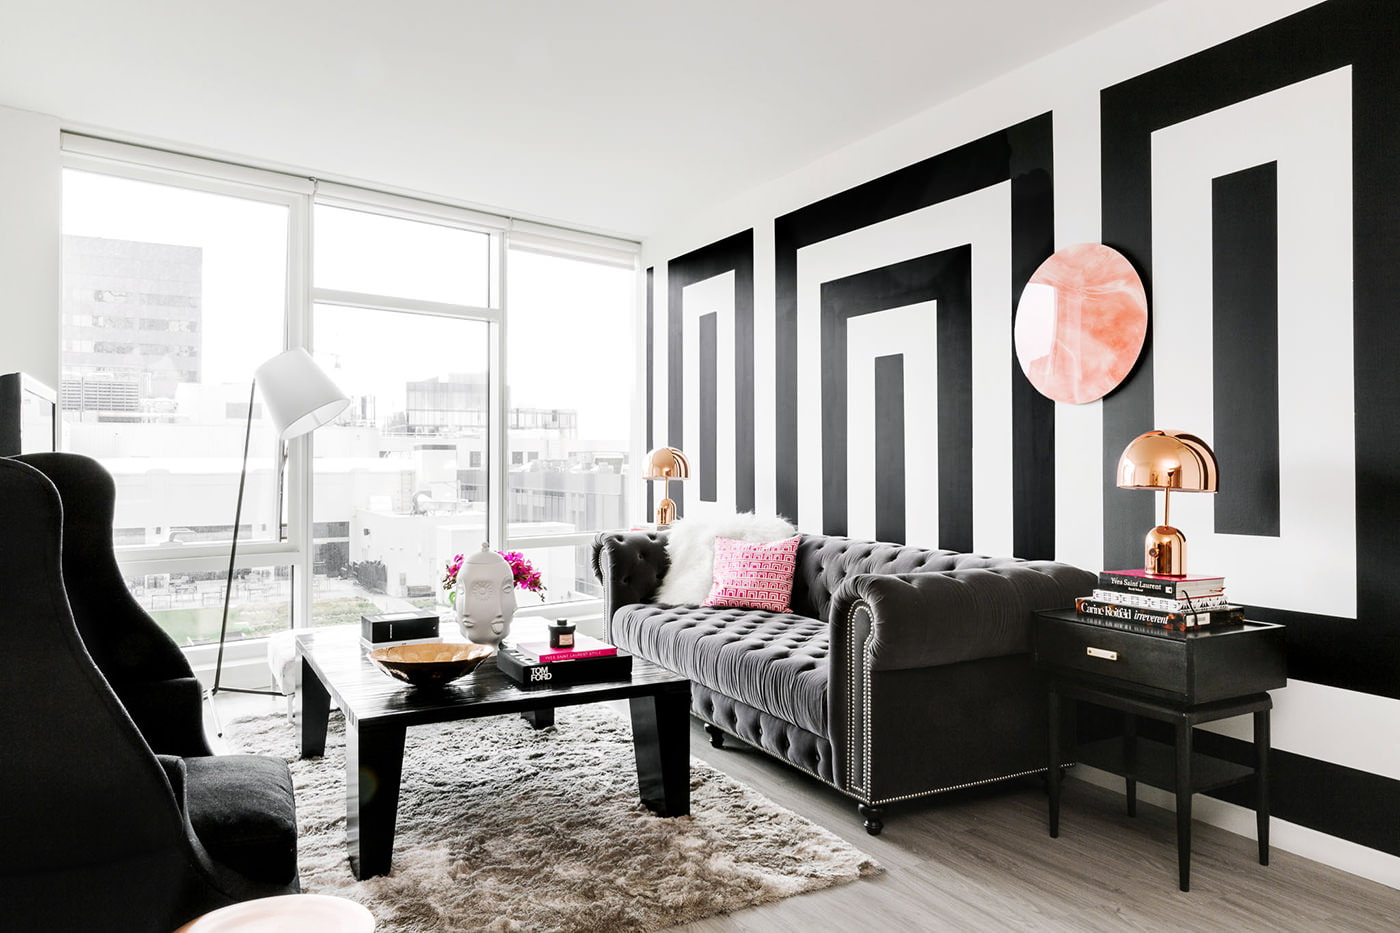 55 - Living room ideas black white and red ...